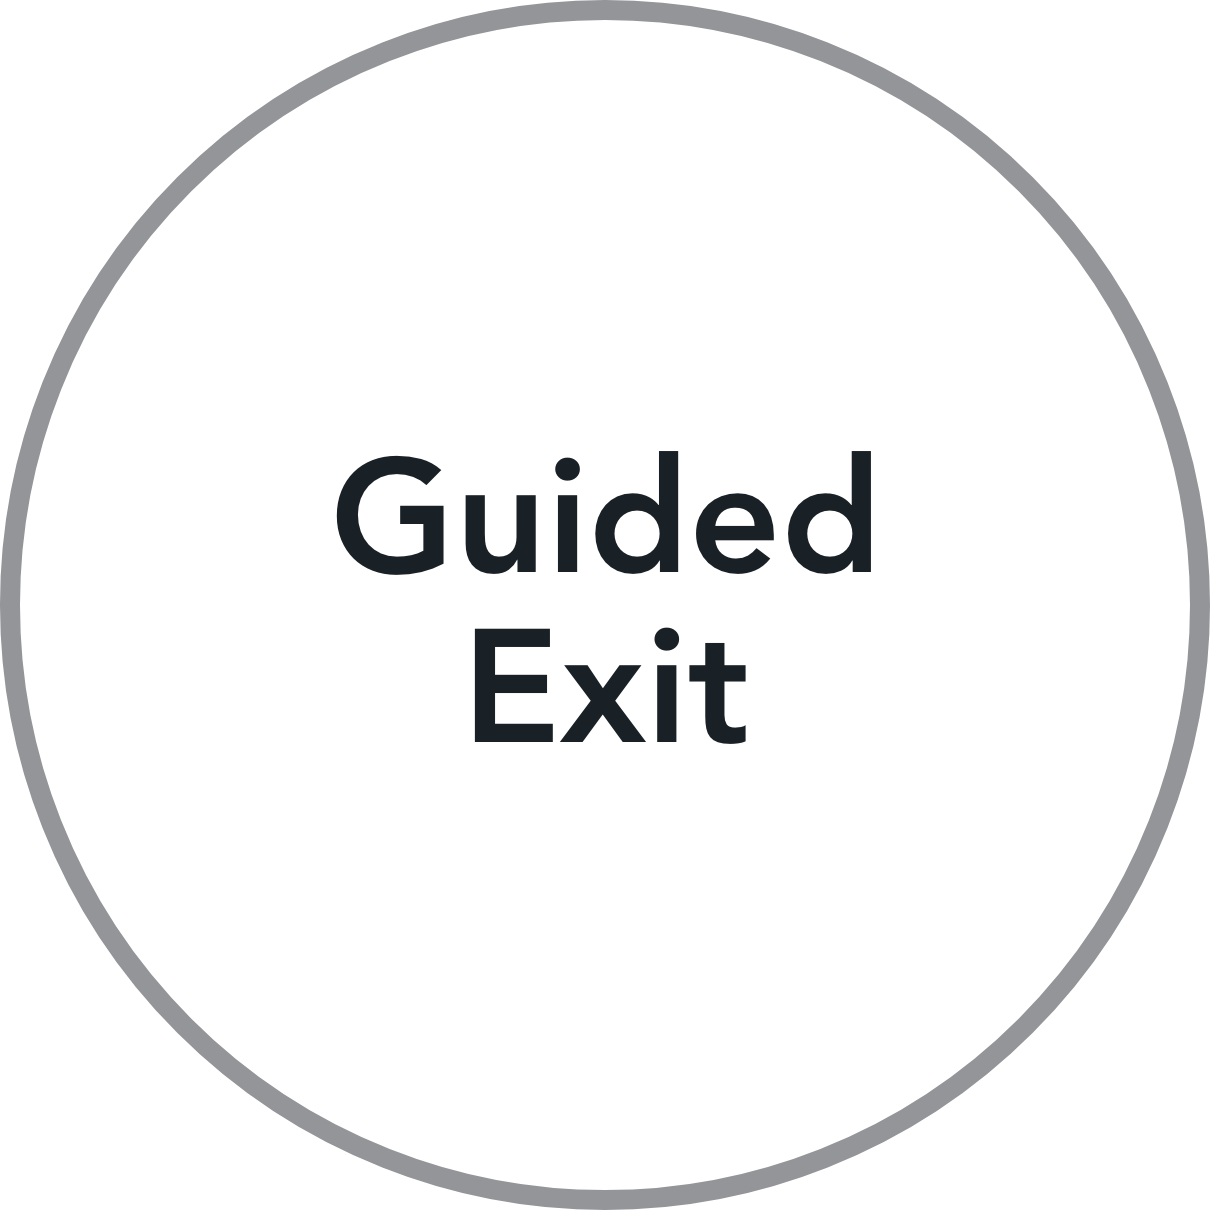 Guided Exit